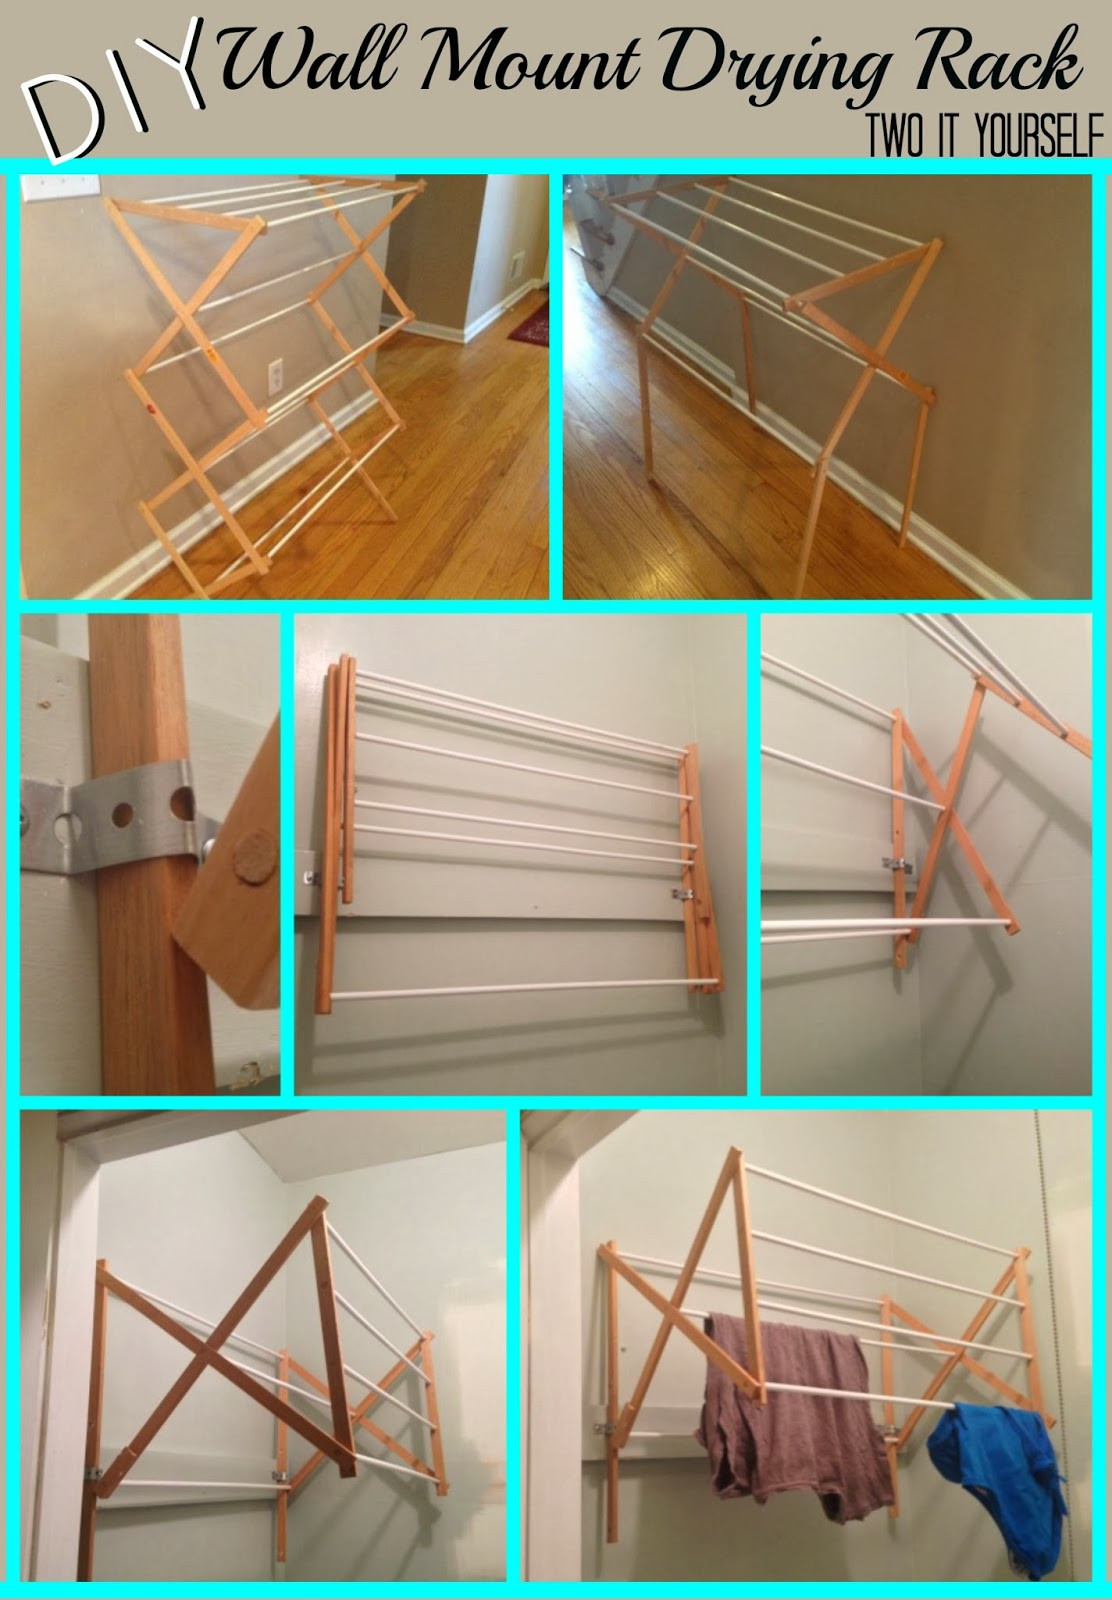 Best ideas about DIY Drying Racks . Save or Pin Two It Yourself DIY Laundry Drying Rack Wall Mount from Now.